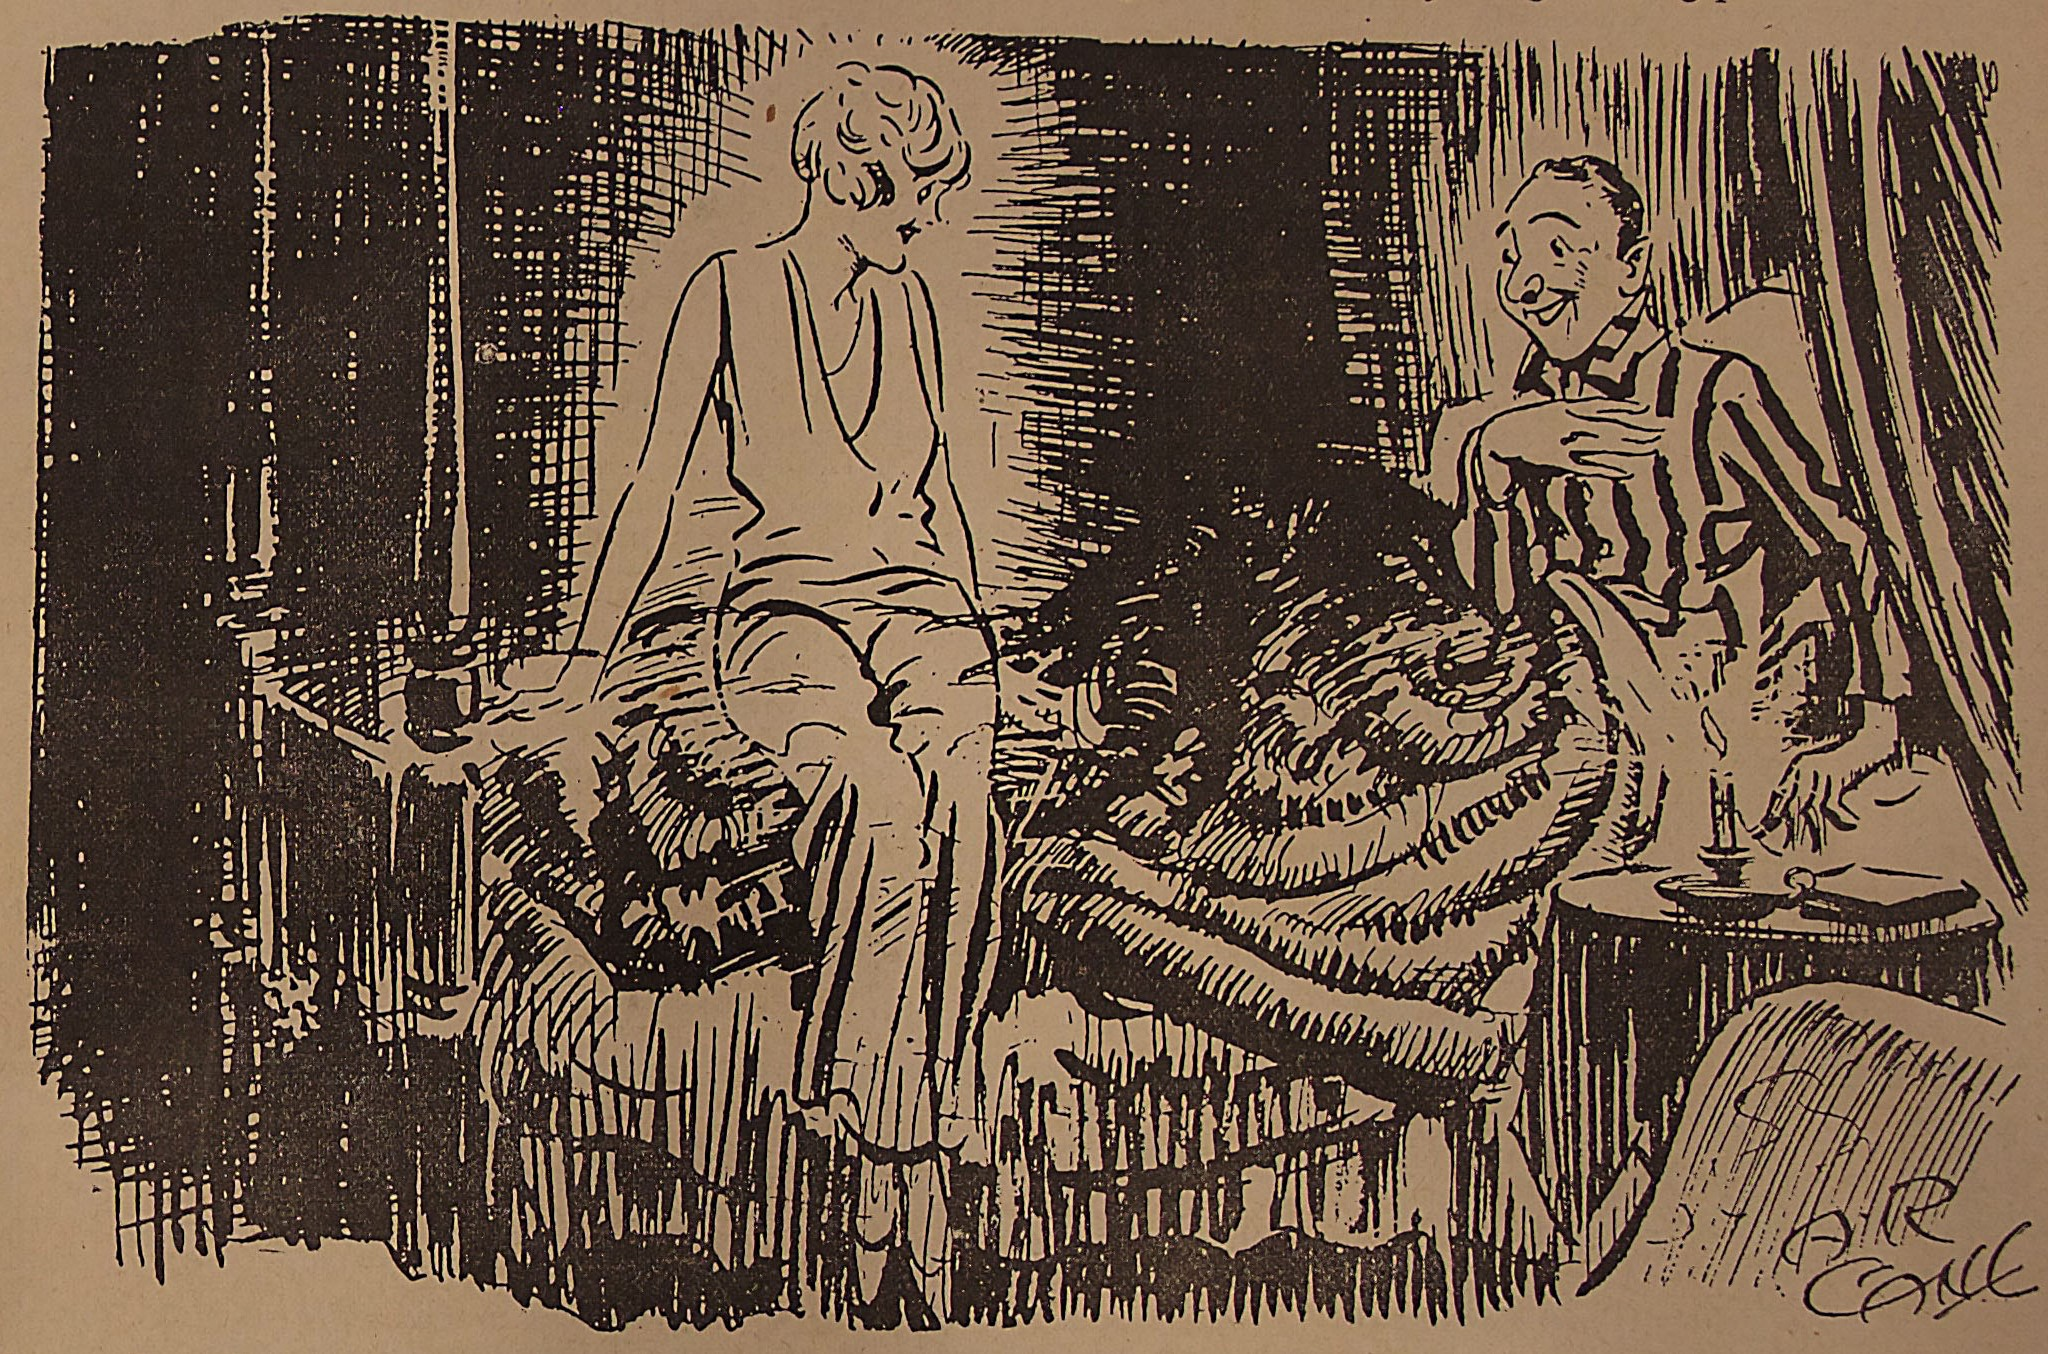 A man in striped pajamas is sitting up in a bed. A woman with                      short hair, dressed in an elegant pantsuit, sits at the end of the bed smiling                      at the man. A lit candle is on the bedside table. The cartoon is signed A.R.                      CANE.